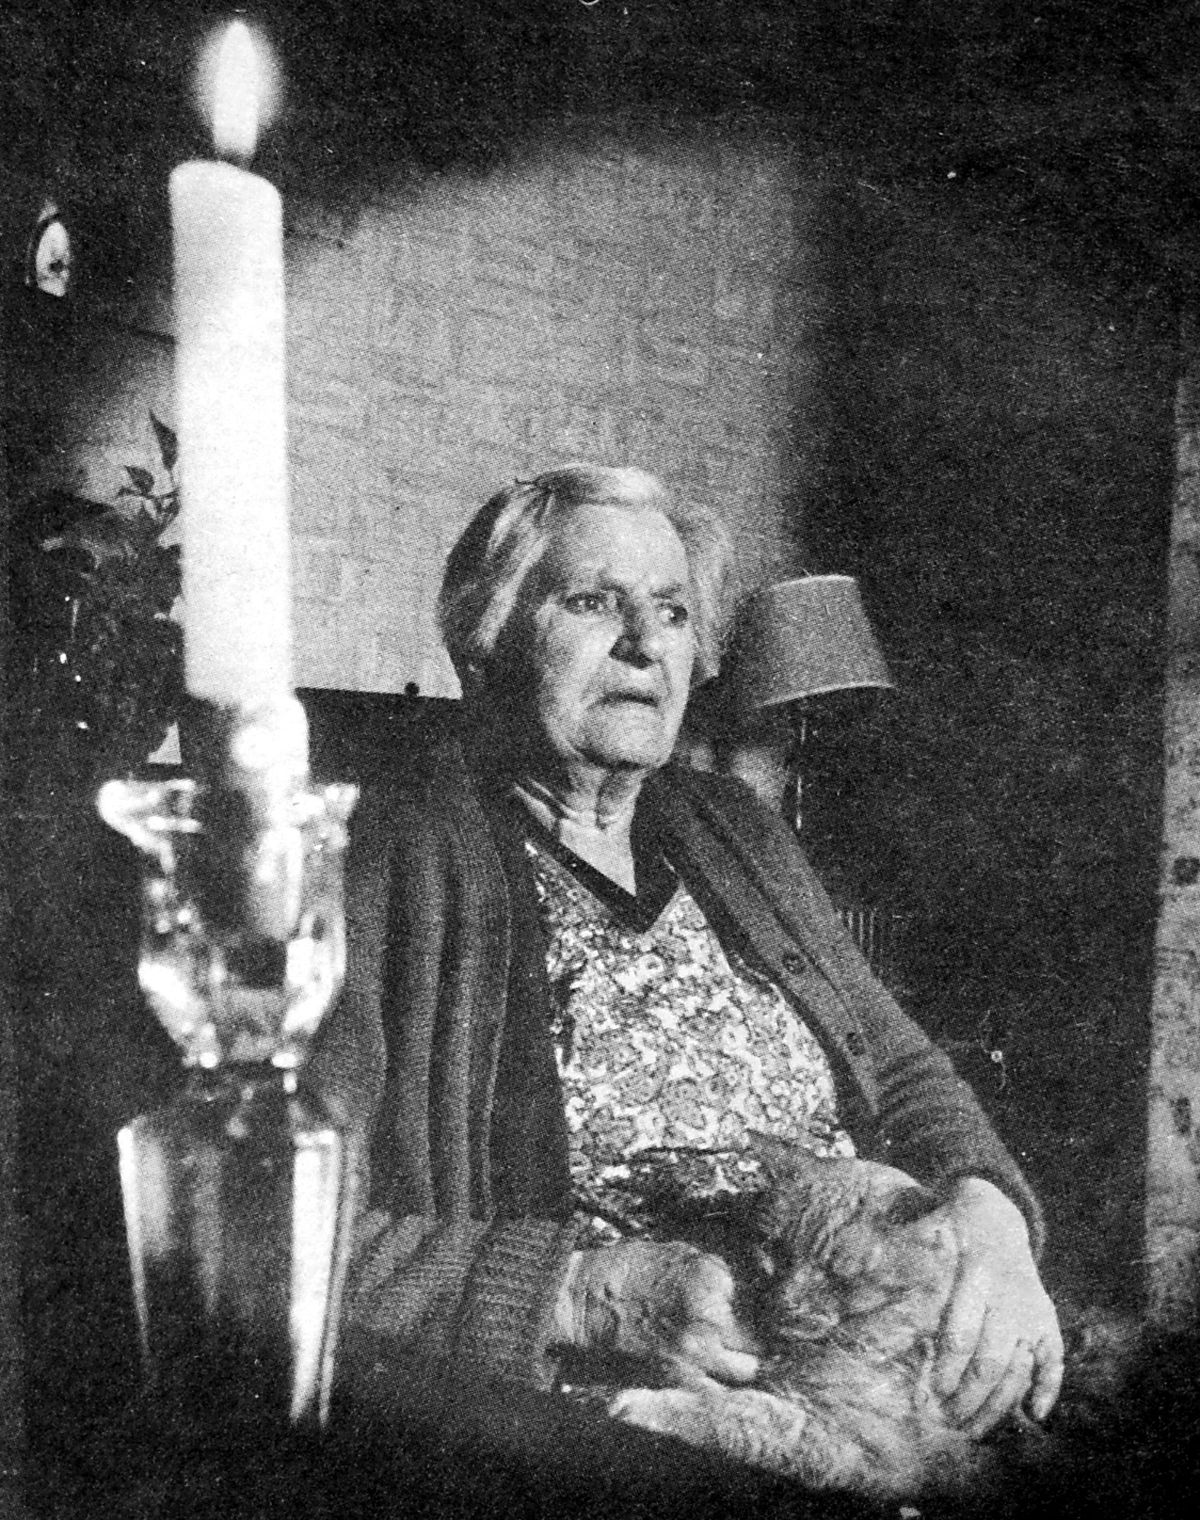 Mrs Lily Suthon, aged 73, of Madeley, resorts to candlelight during a power cut in February 1972.